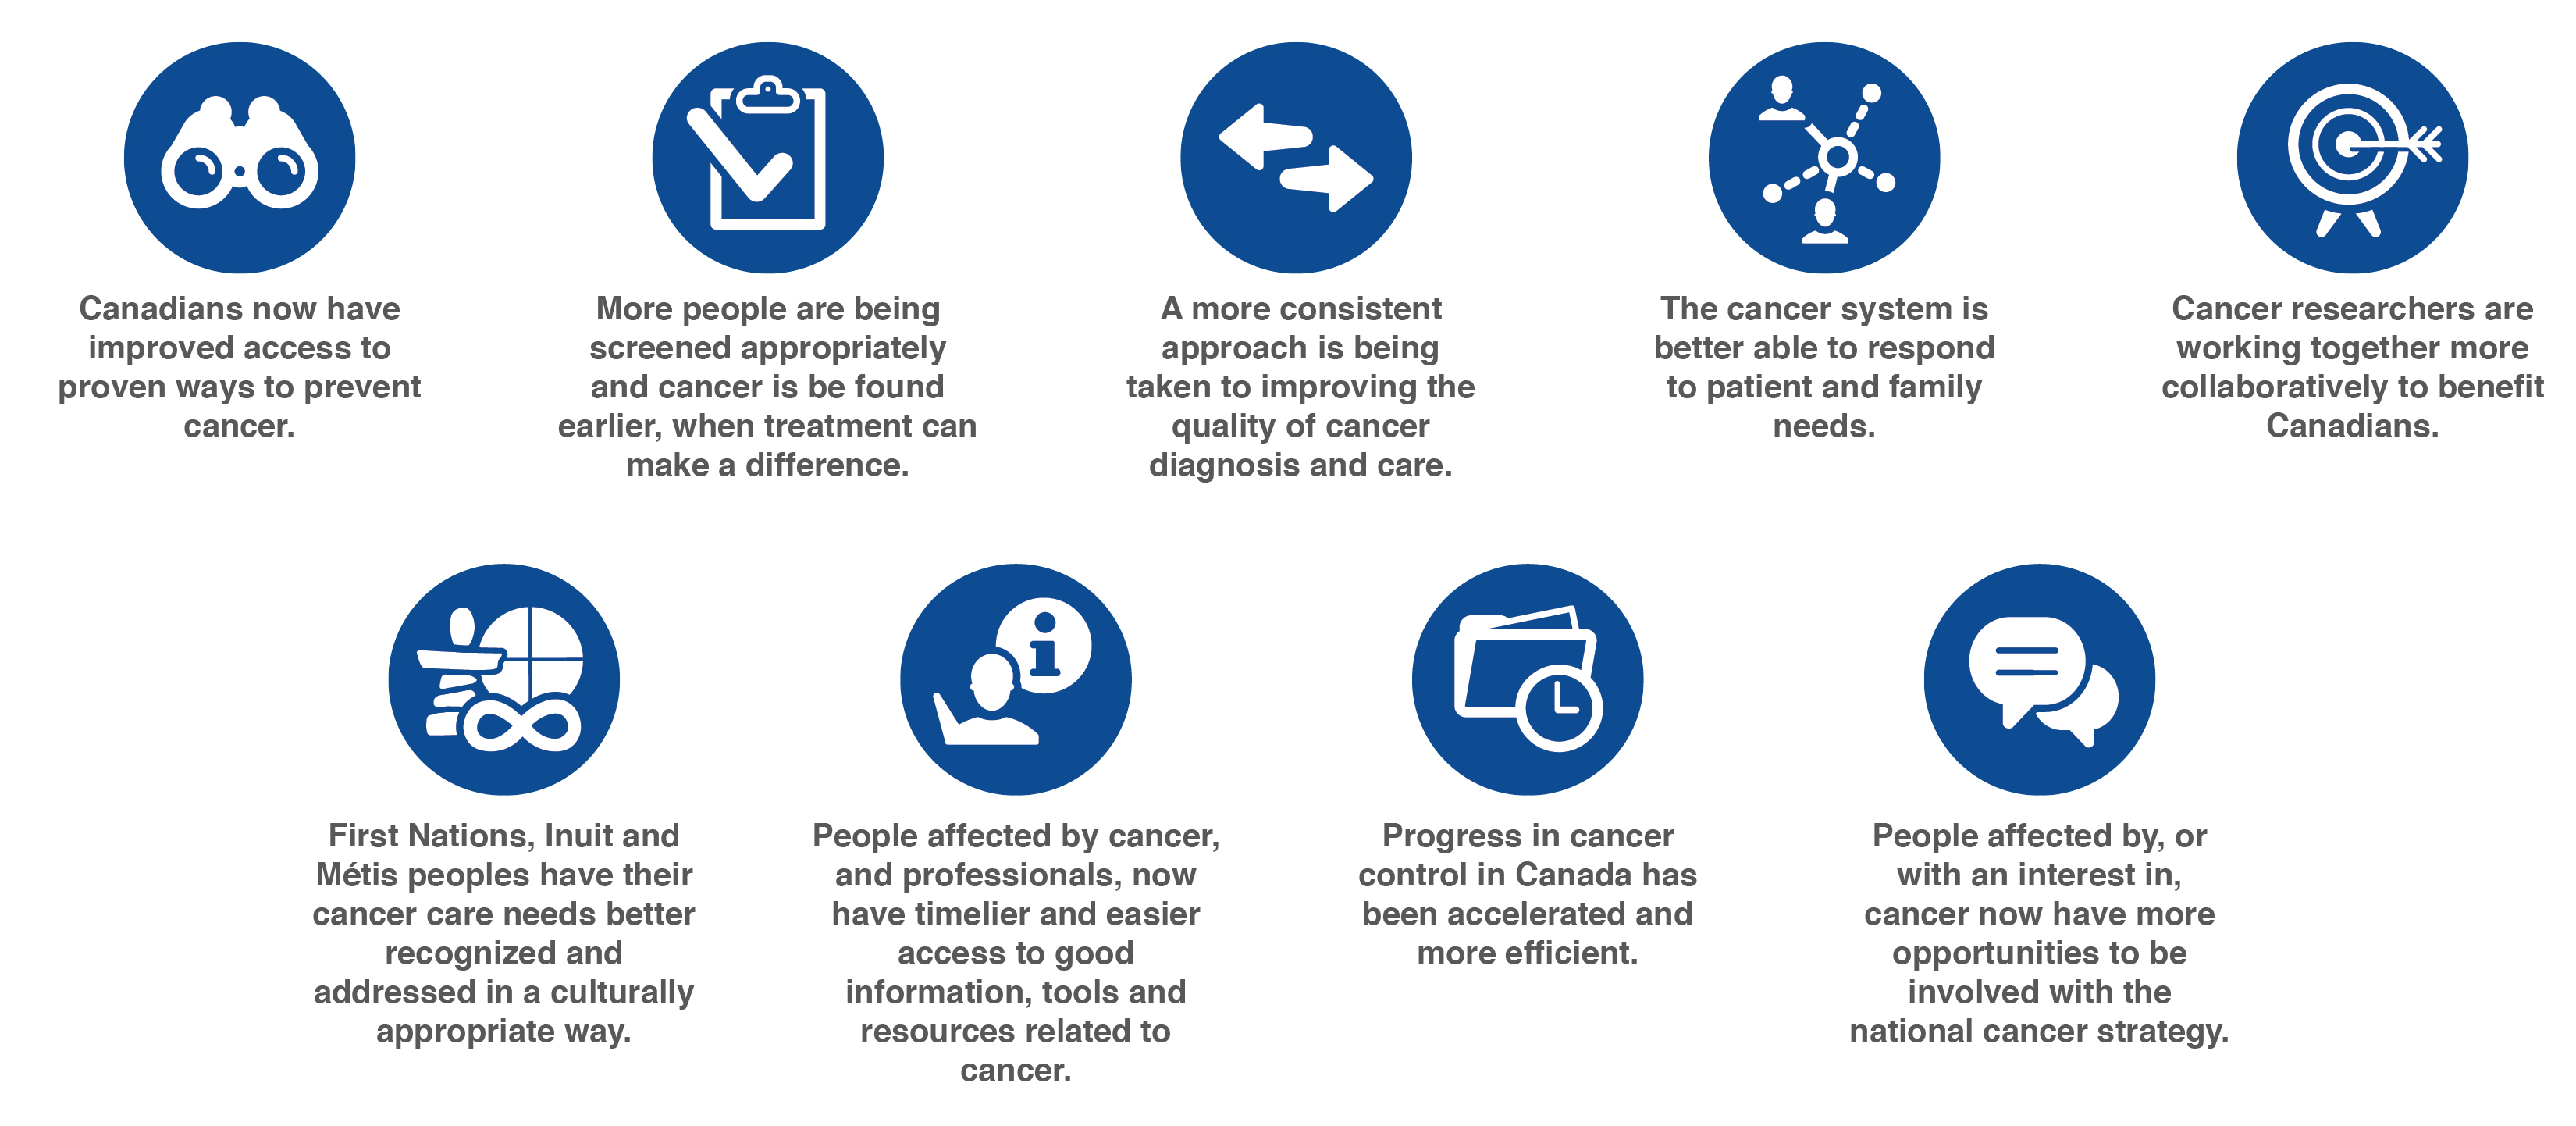 Our progress so far... Canadians now have improved access to proven ways to prevent cancer More people are being screening appropiately A more consistent approach is being taken to improving the quality of cancer diagnosis and care The cancer system is better able to respond to patient and family needs Cancer researchers are working together more collaboratively to benefit Canadians First Nations, Inuit and Metis people have their cancer care needs better recognized and addressed in a culturally appropiate way People affected by cancer and professionals, now have timelier and easier access to good information, tools and resources related to cancer Progress in cancer control in Canada has been accelerated and more efficient PEople affected by, or with an interest in cancer now have more opportunities to be involved with the national cancer strategy.